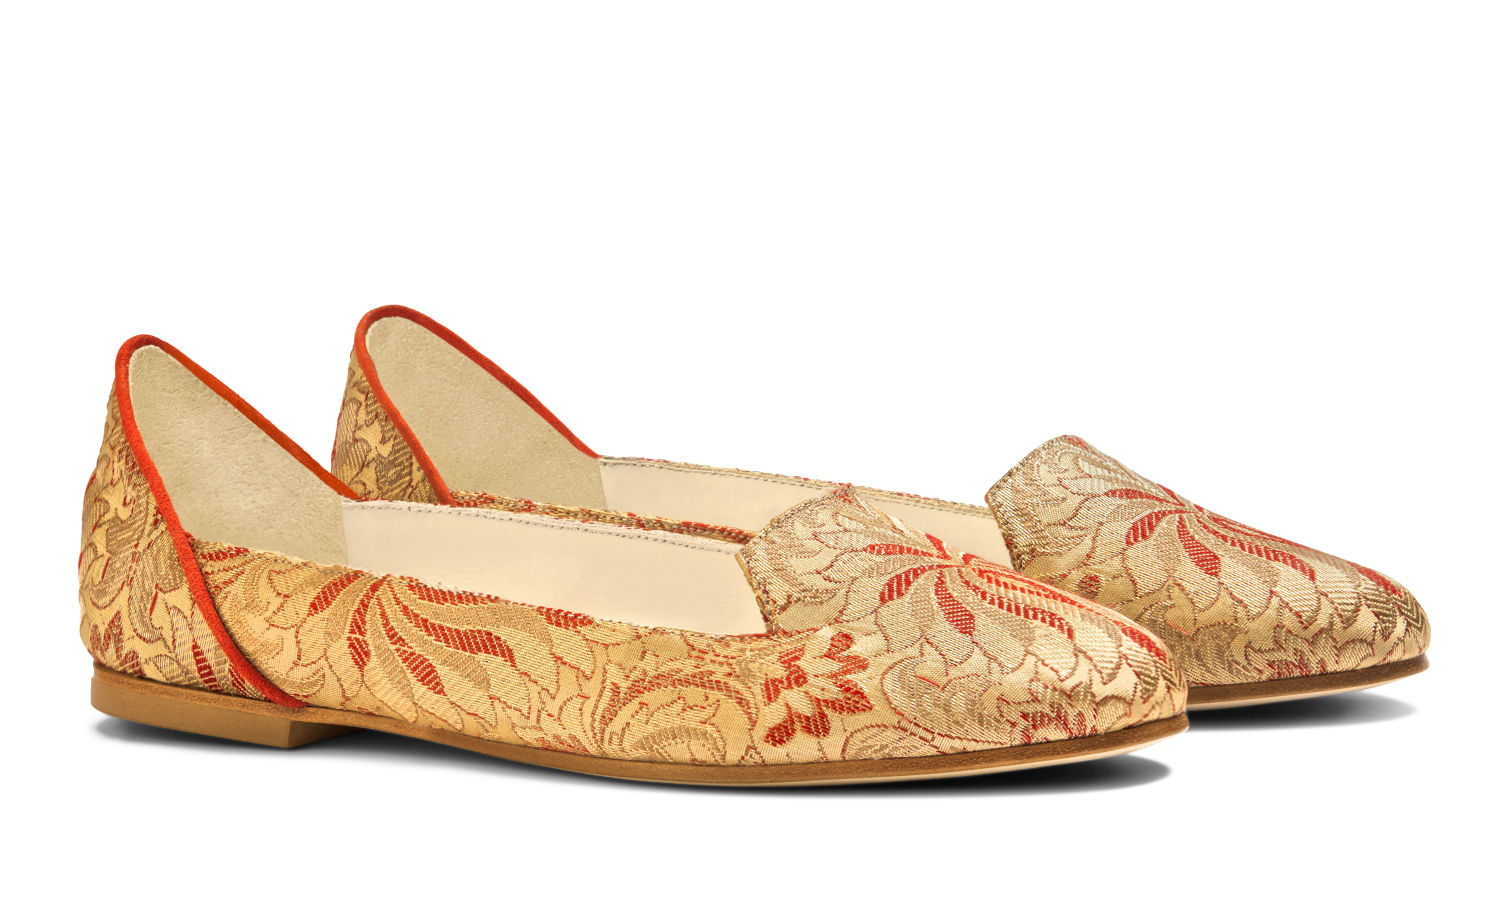 Bote A Mano Ballet Flats Red Made in Italy